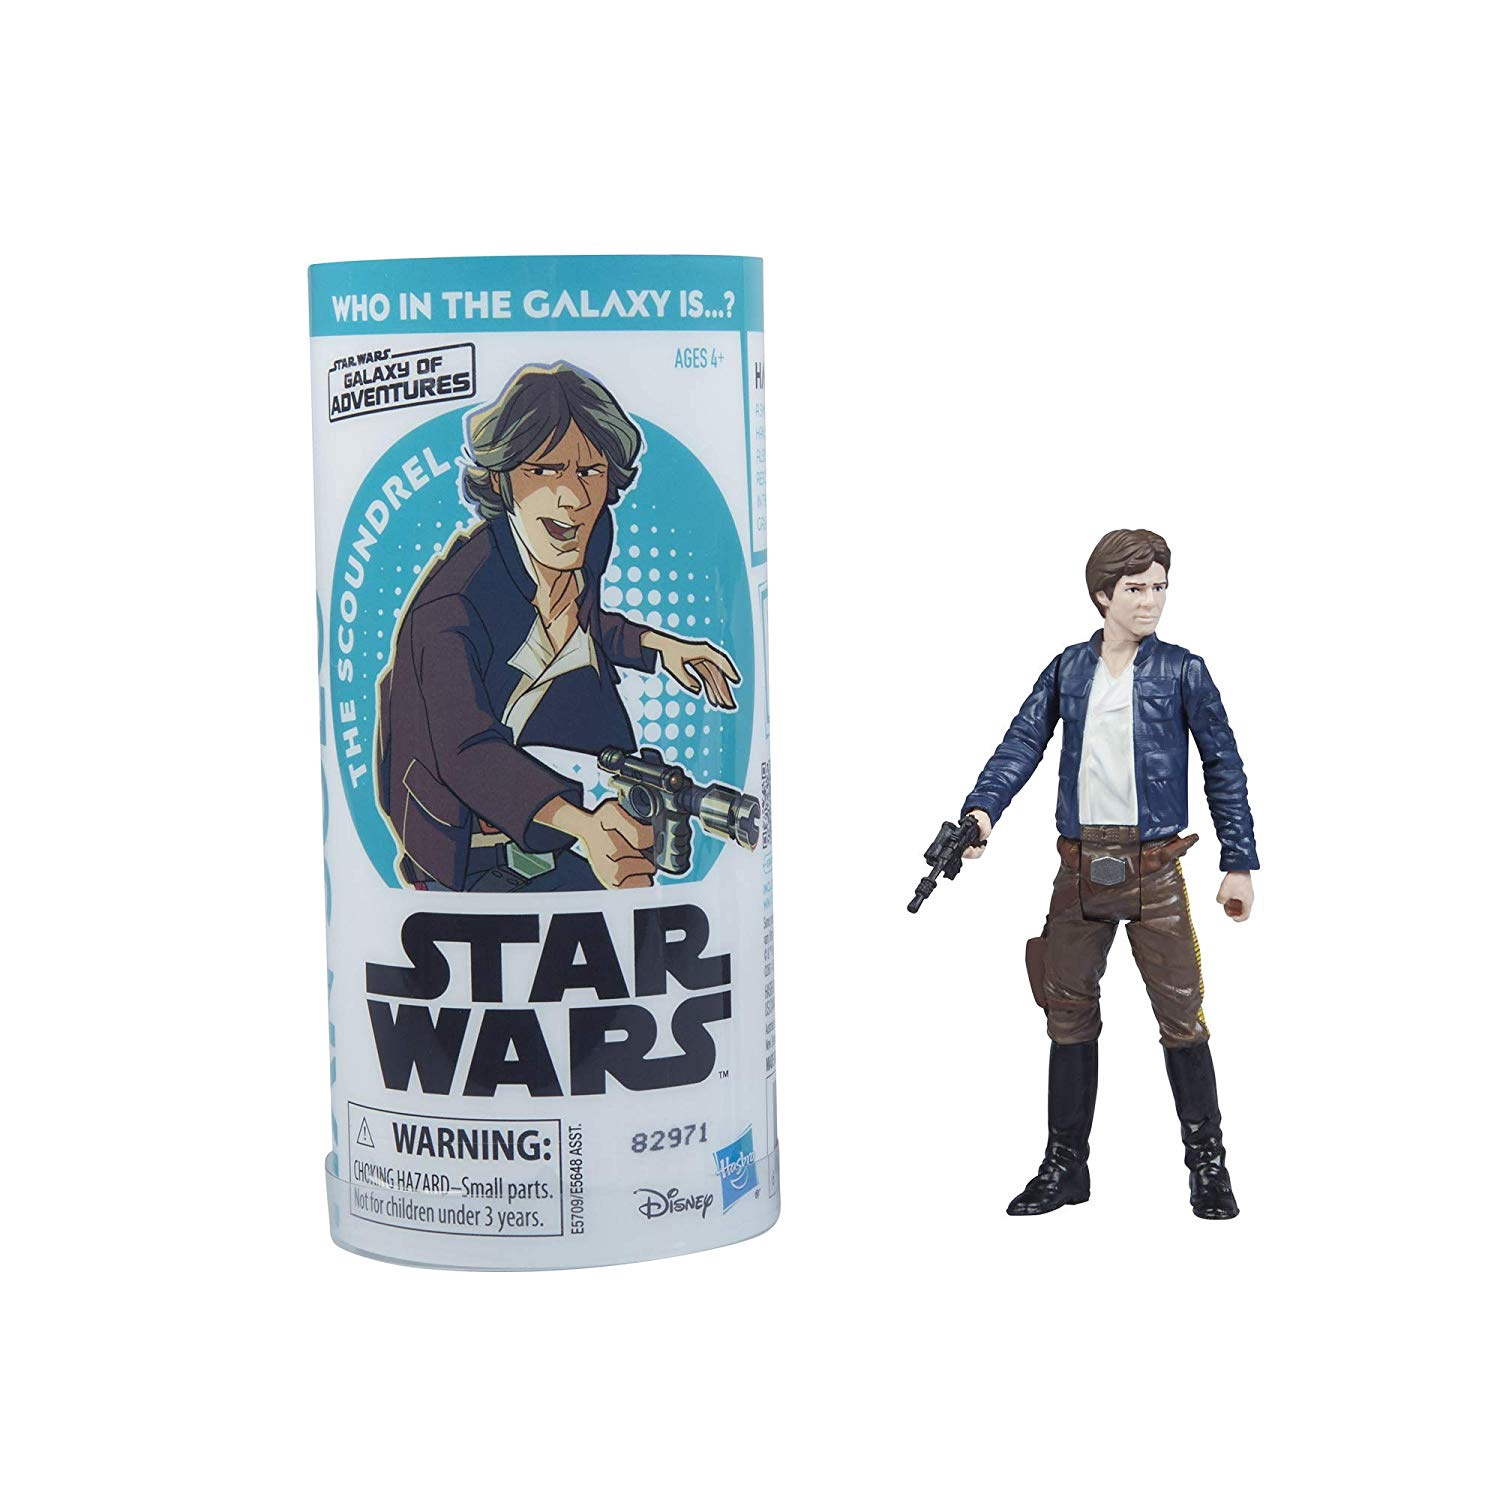 STAR WARS GALAXY OF ADVENTURES HAN SOLO